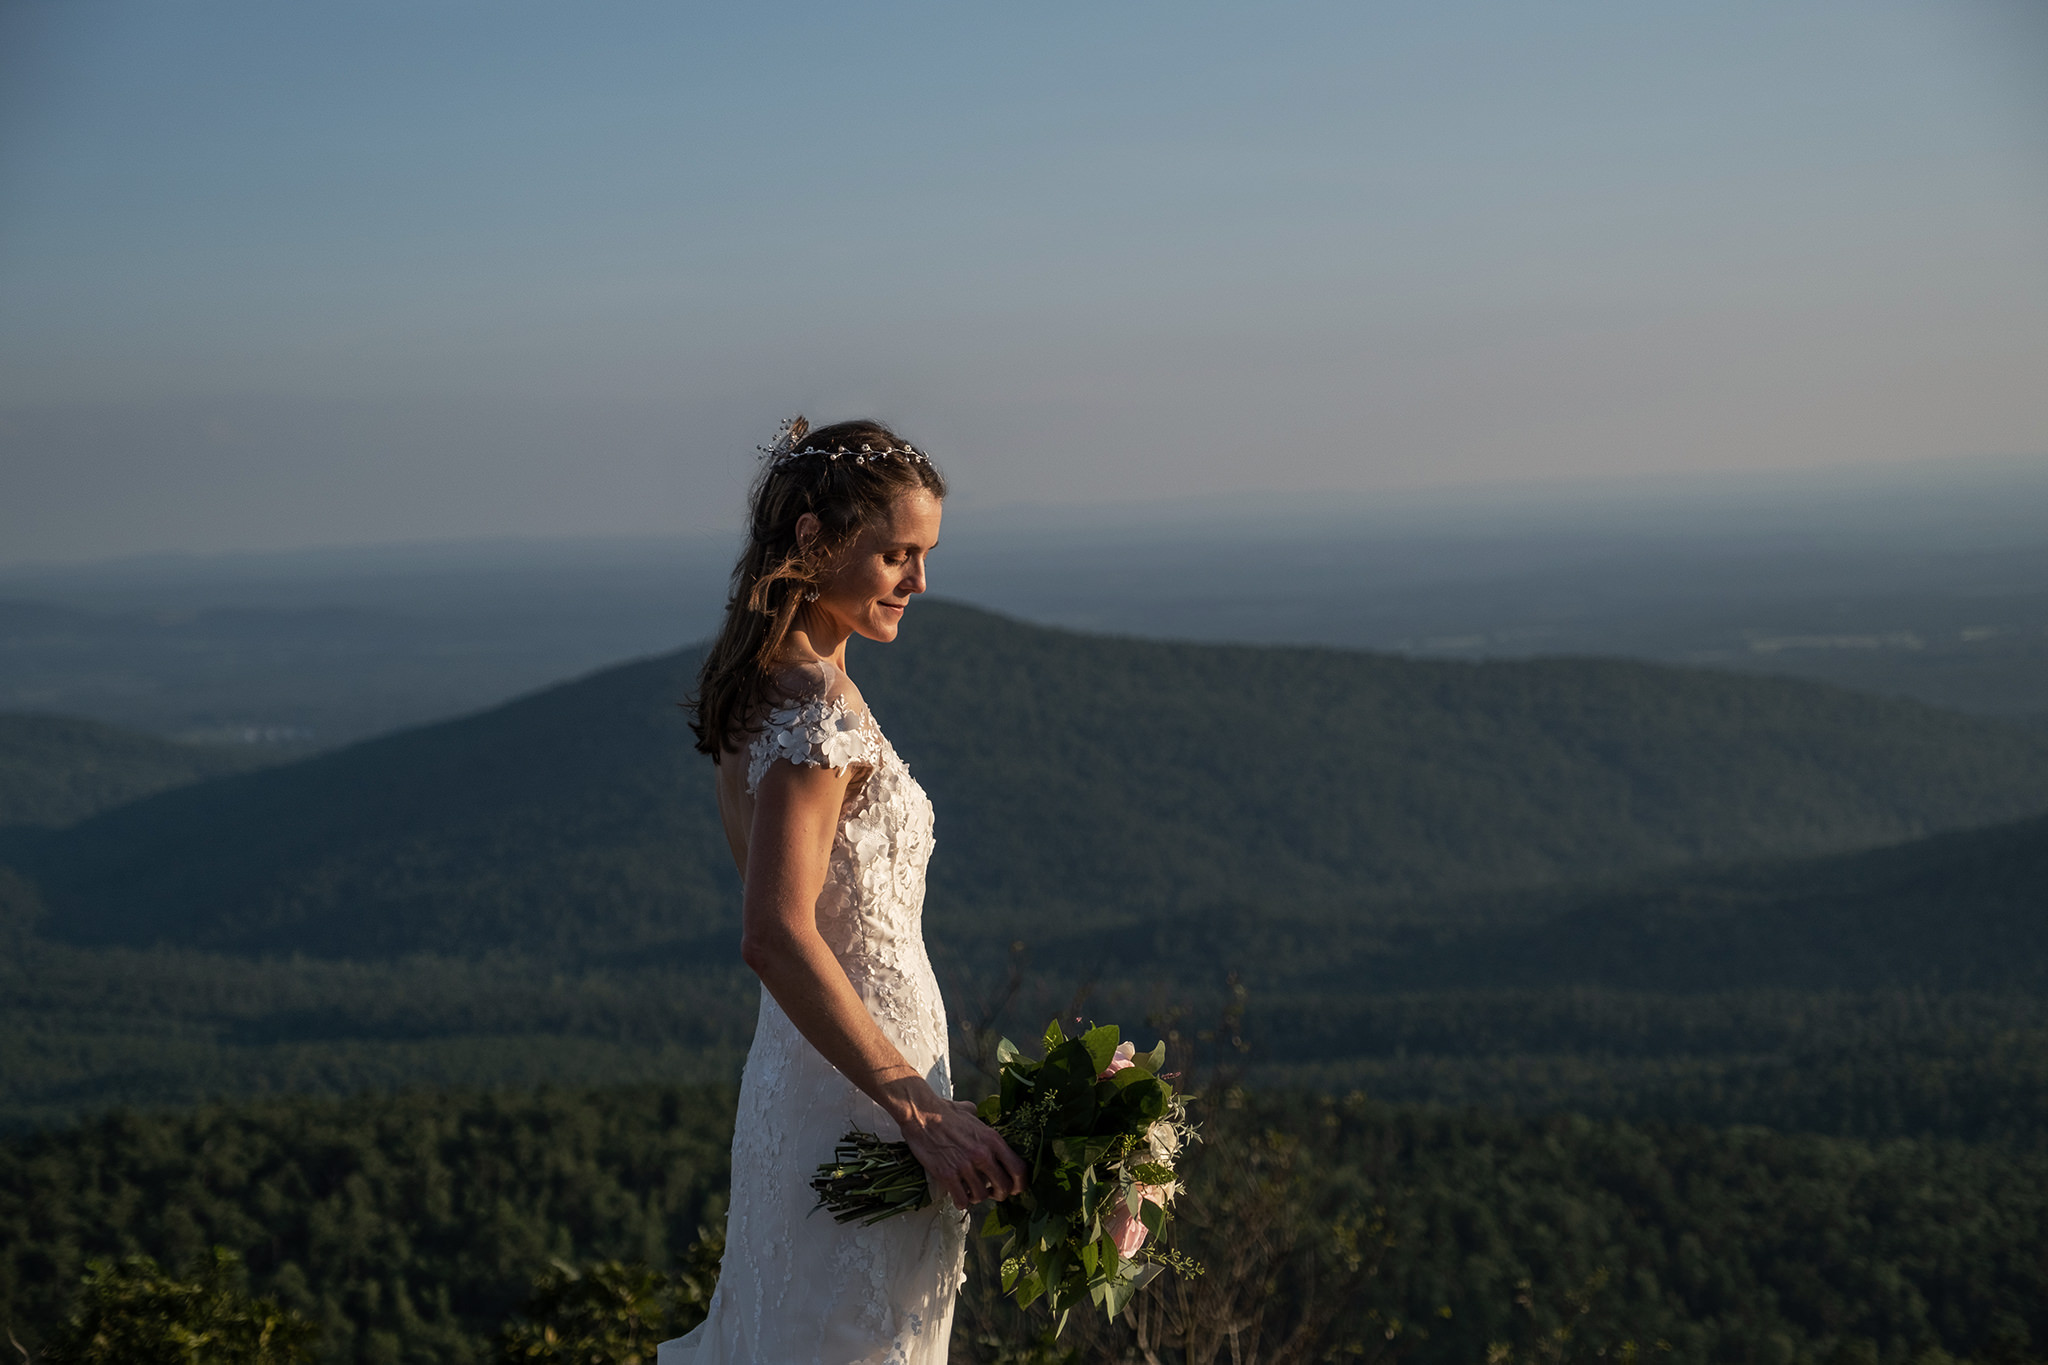 arkansasweddingphotographer22.JPG